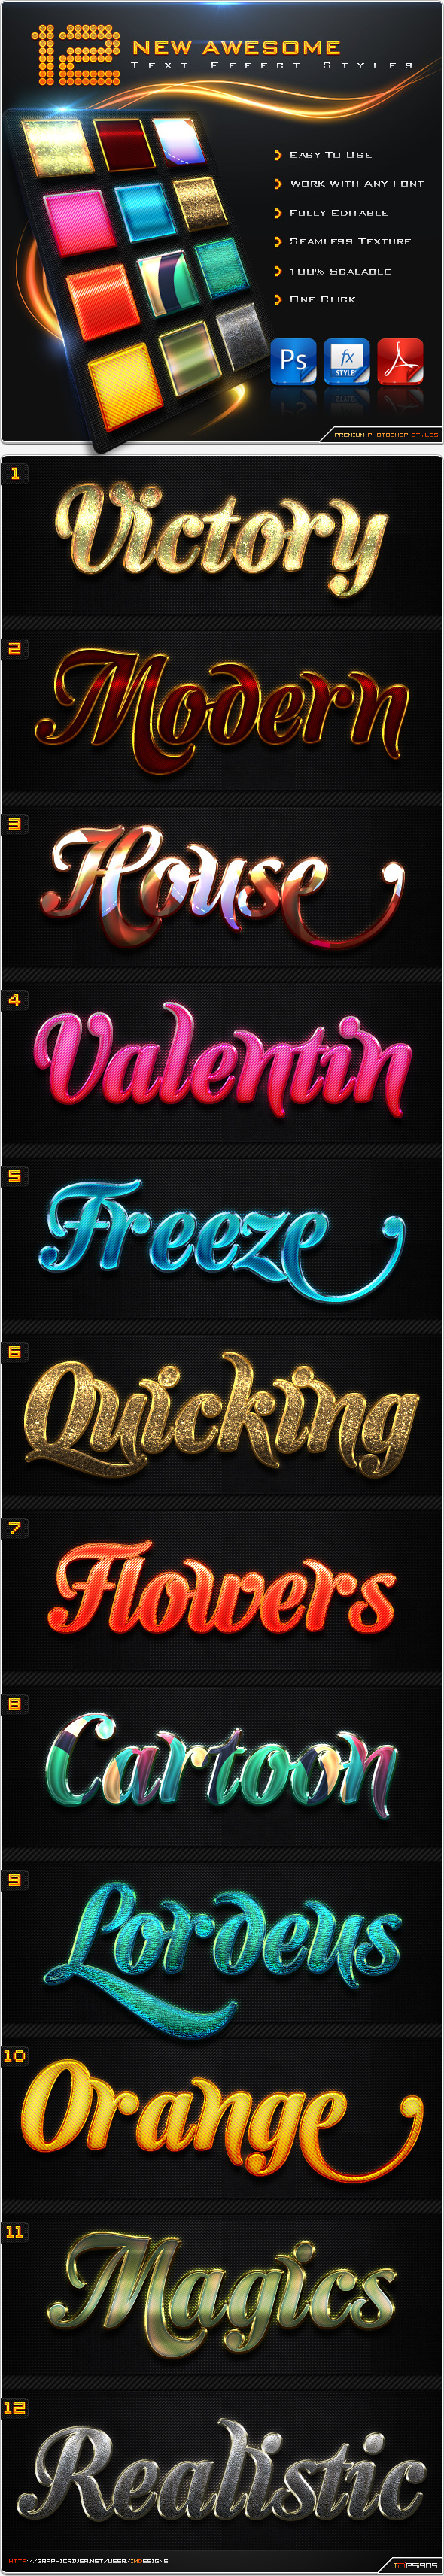 12_new_awesome_text_effect_styles